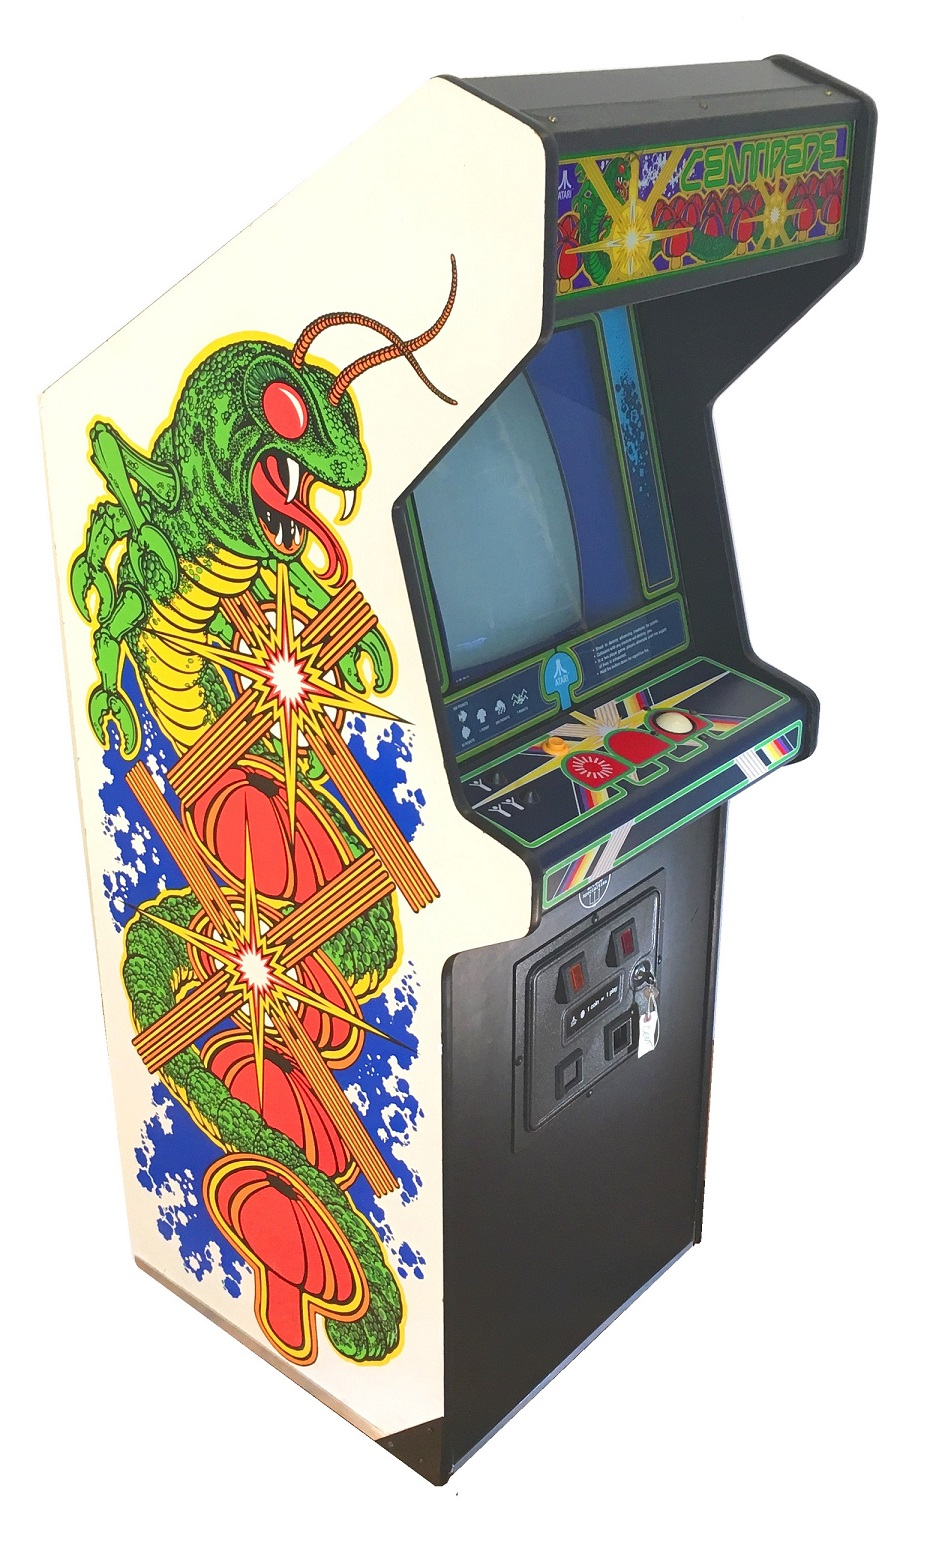 Centipede Video Arcade Game For Sale Arcade Specialties Game Rentals